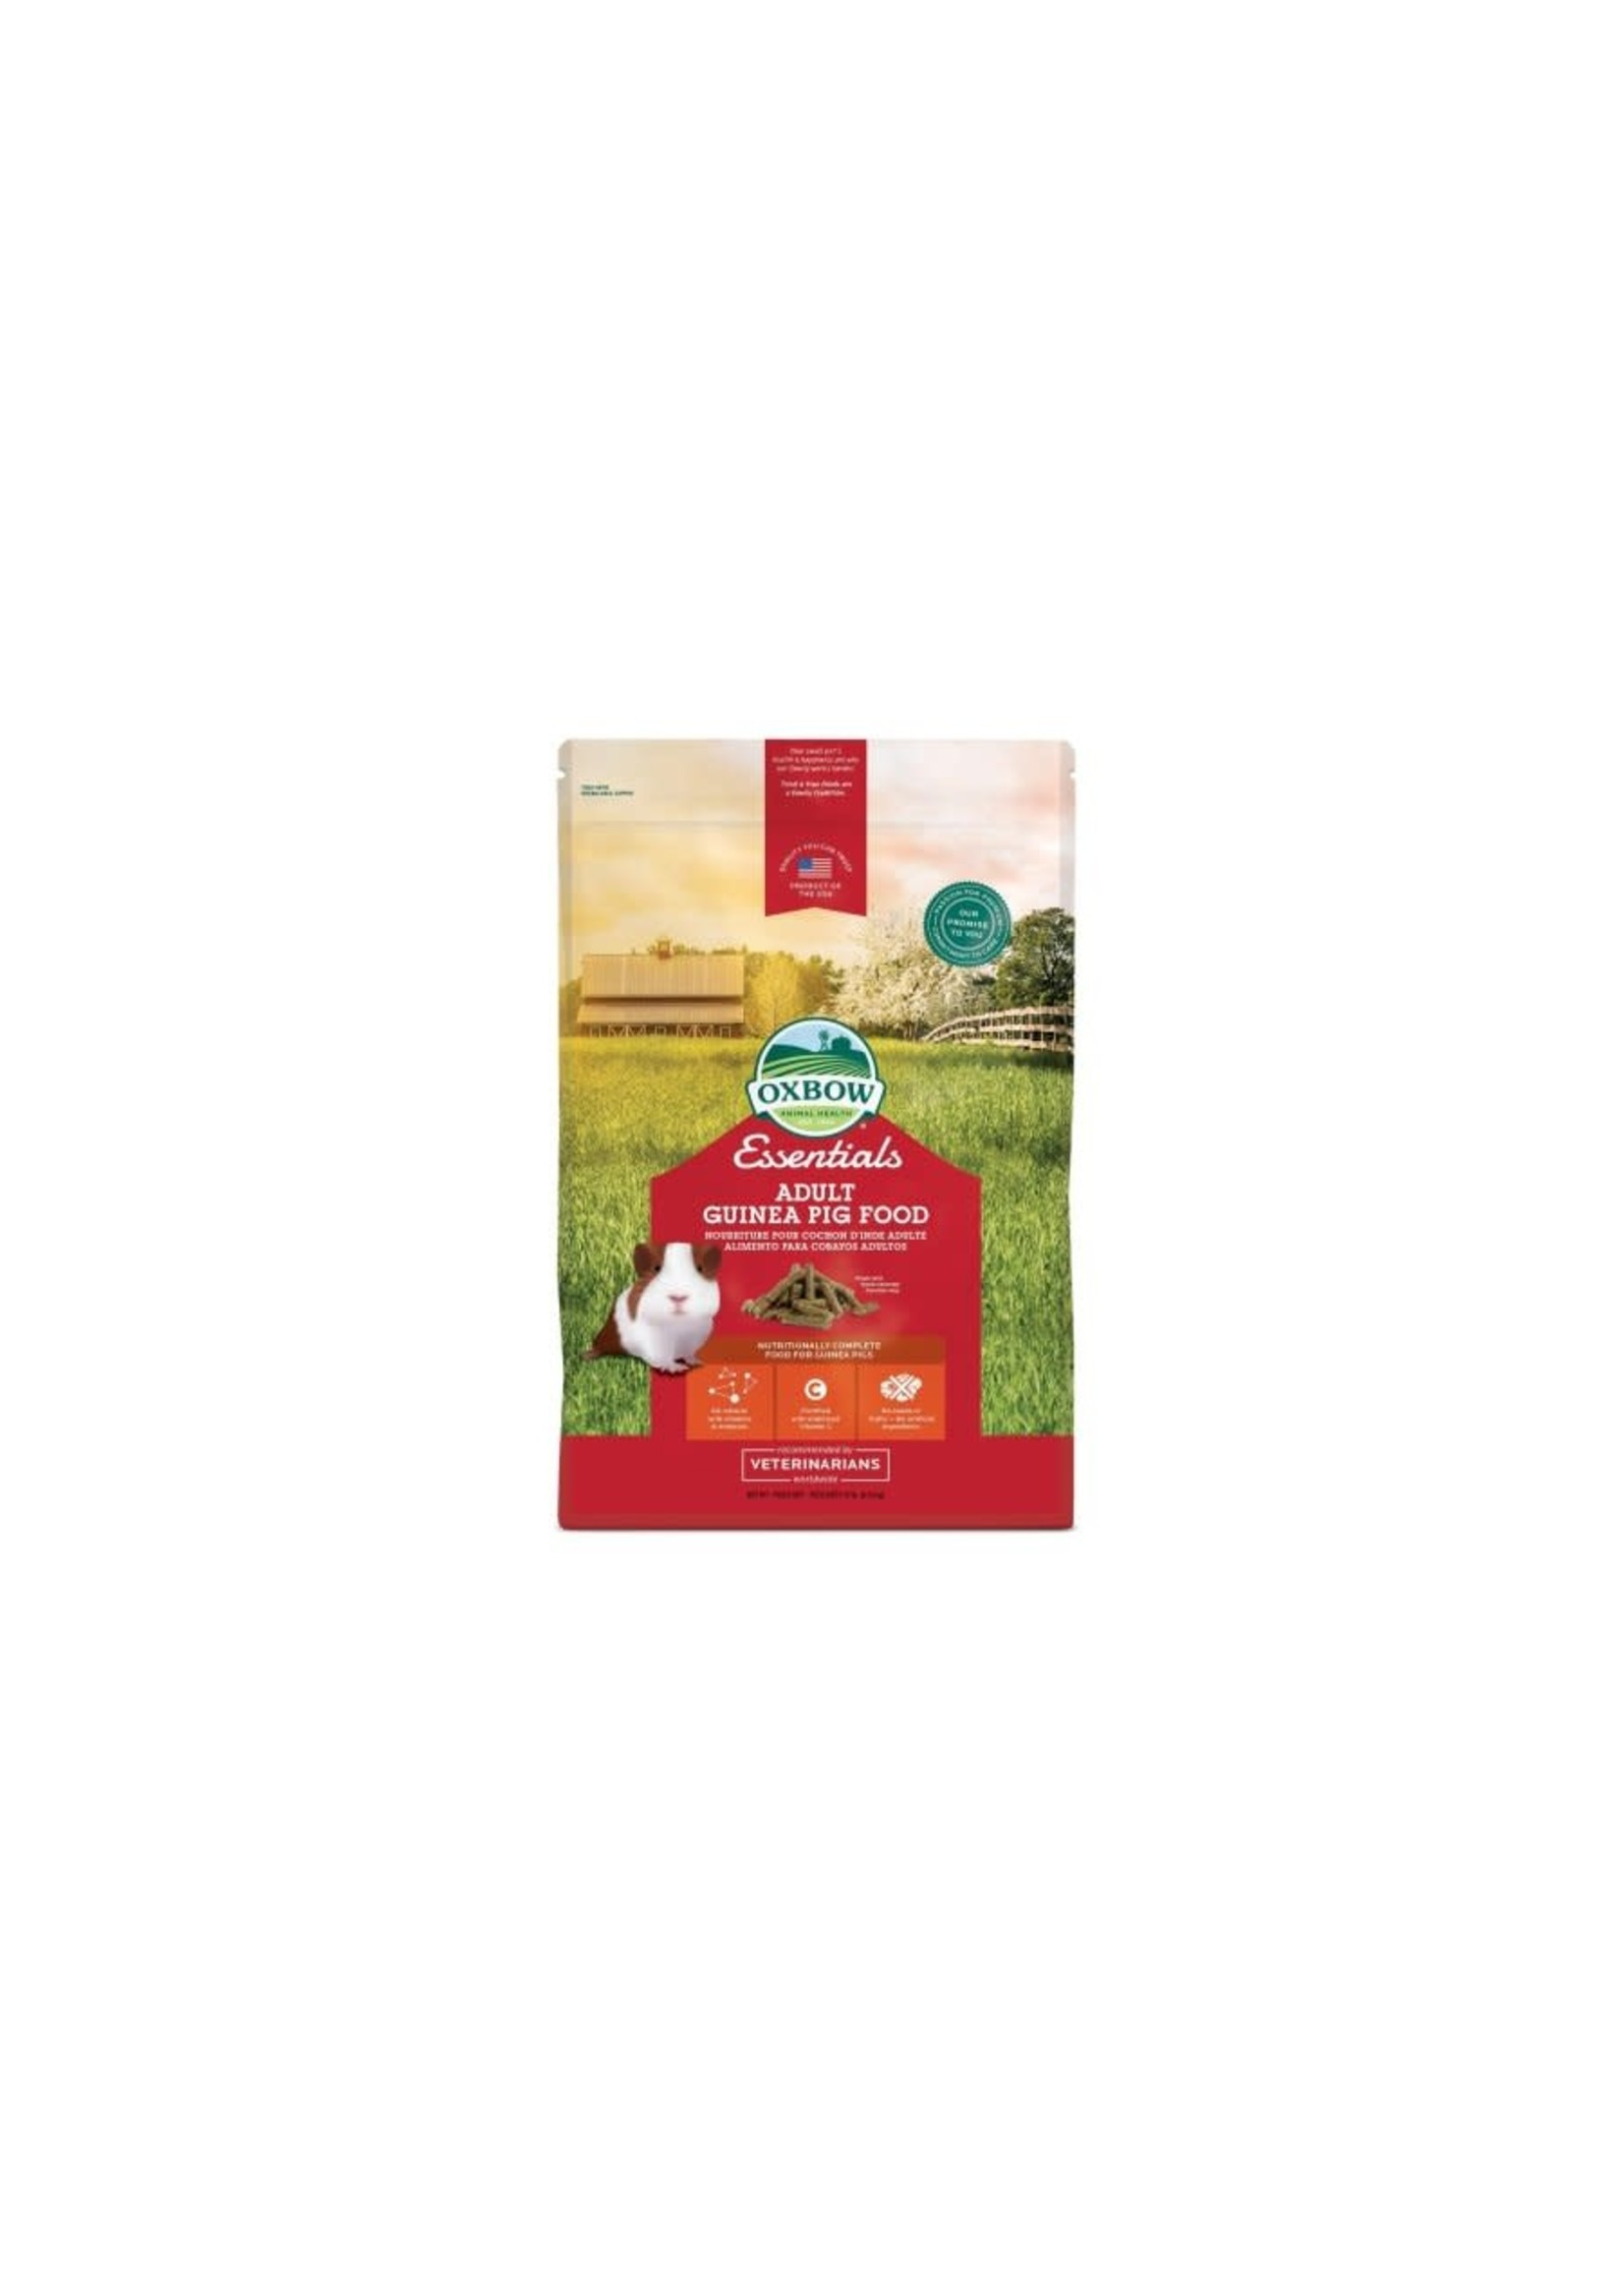 Oxbow Oxbow rongeur nourriture cochon d'Inde adulte 10 lbs